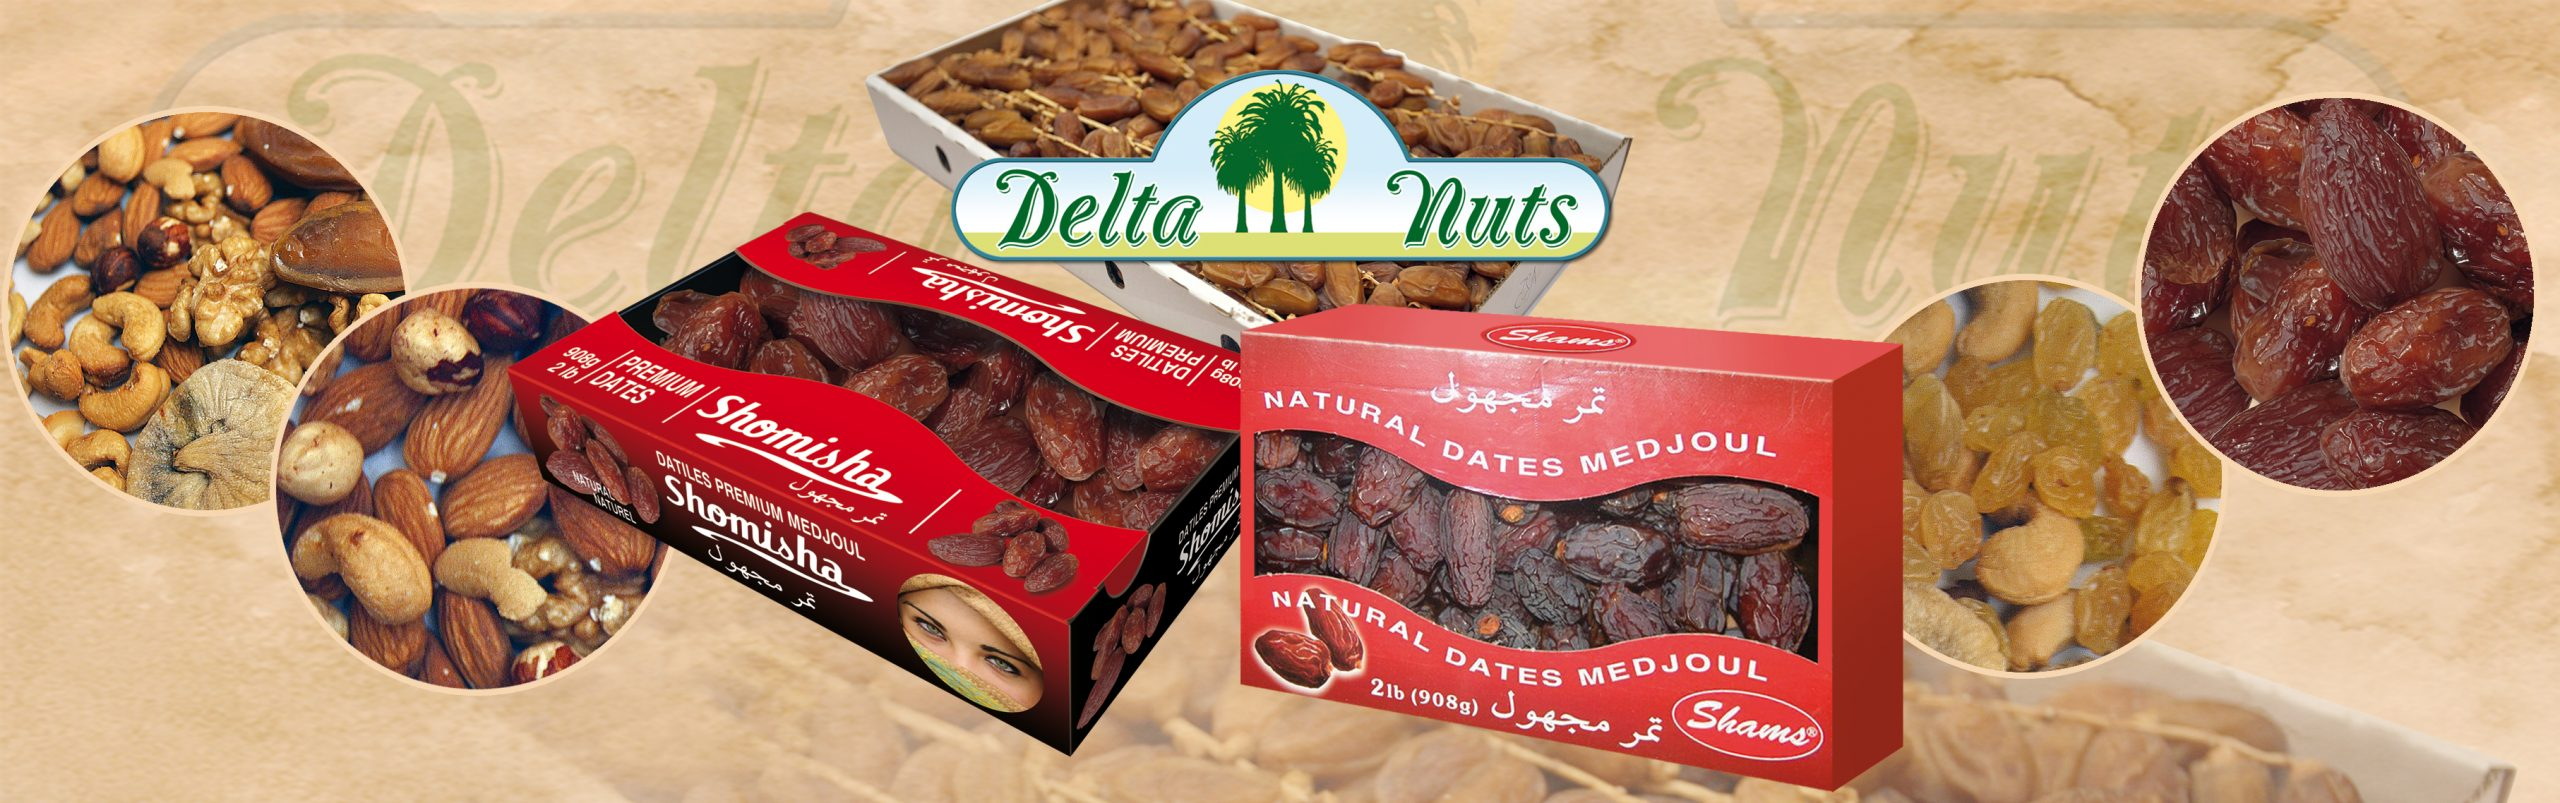 Delta Nuts - IMPORTADOR DE FRUTOS SECOS DE CALIDAD SUPERIOR